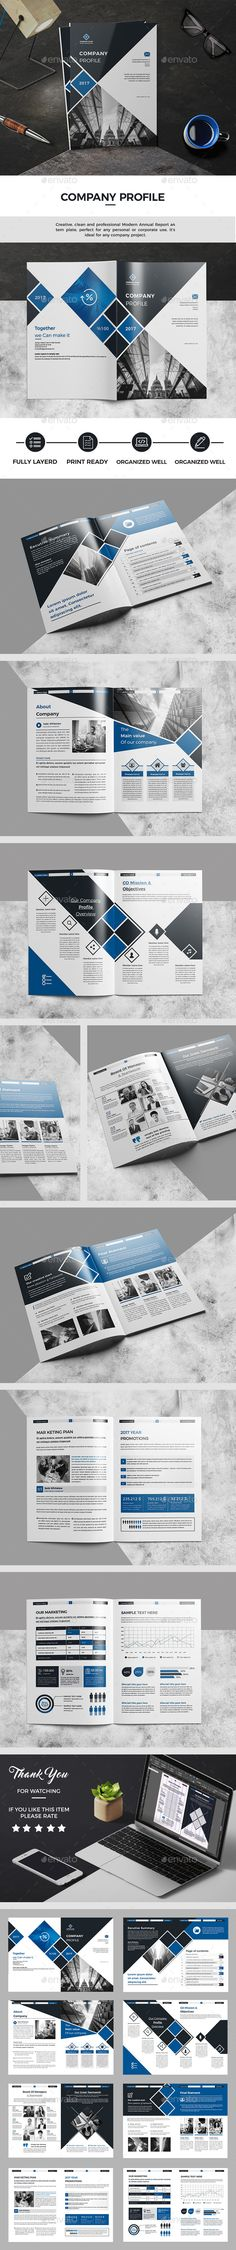 Product Catalog Product catalog, Catalog and Brochures - company profile sample download